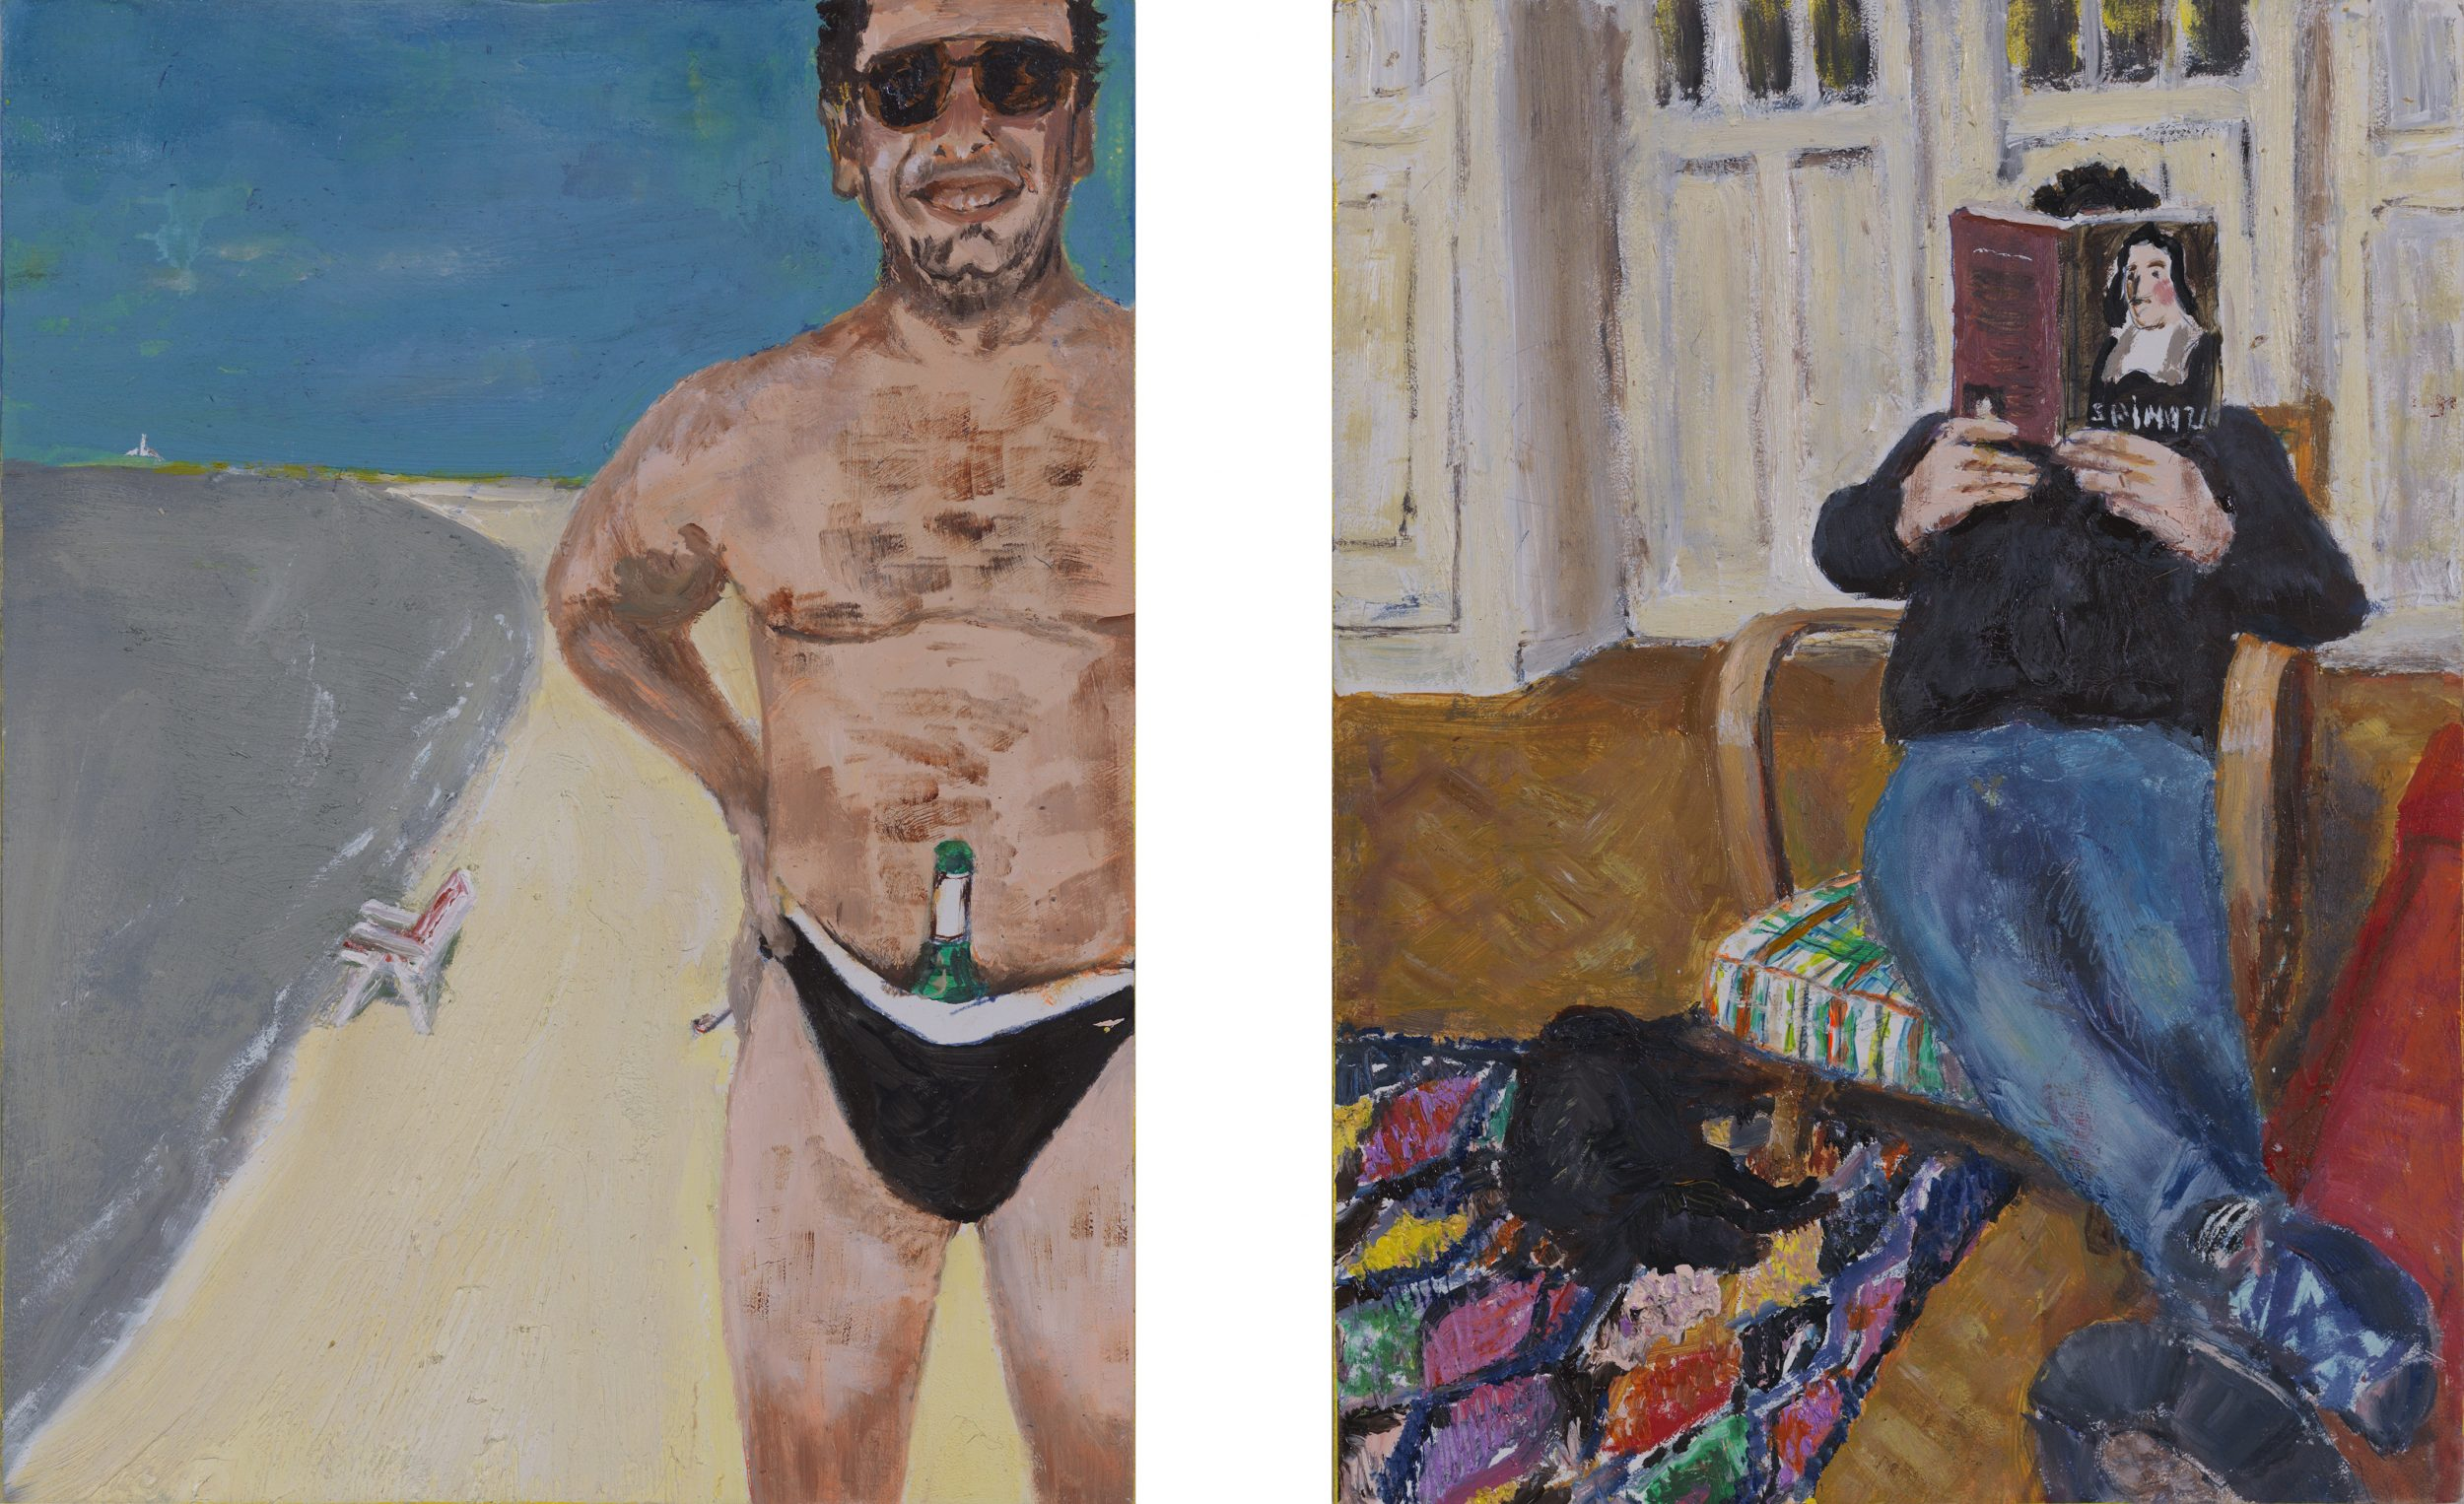 From the series All Artists, 'Katwijk's Wonderboy', portrait of Sebastiaan (diptych)